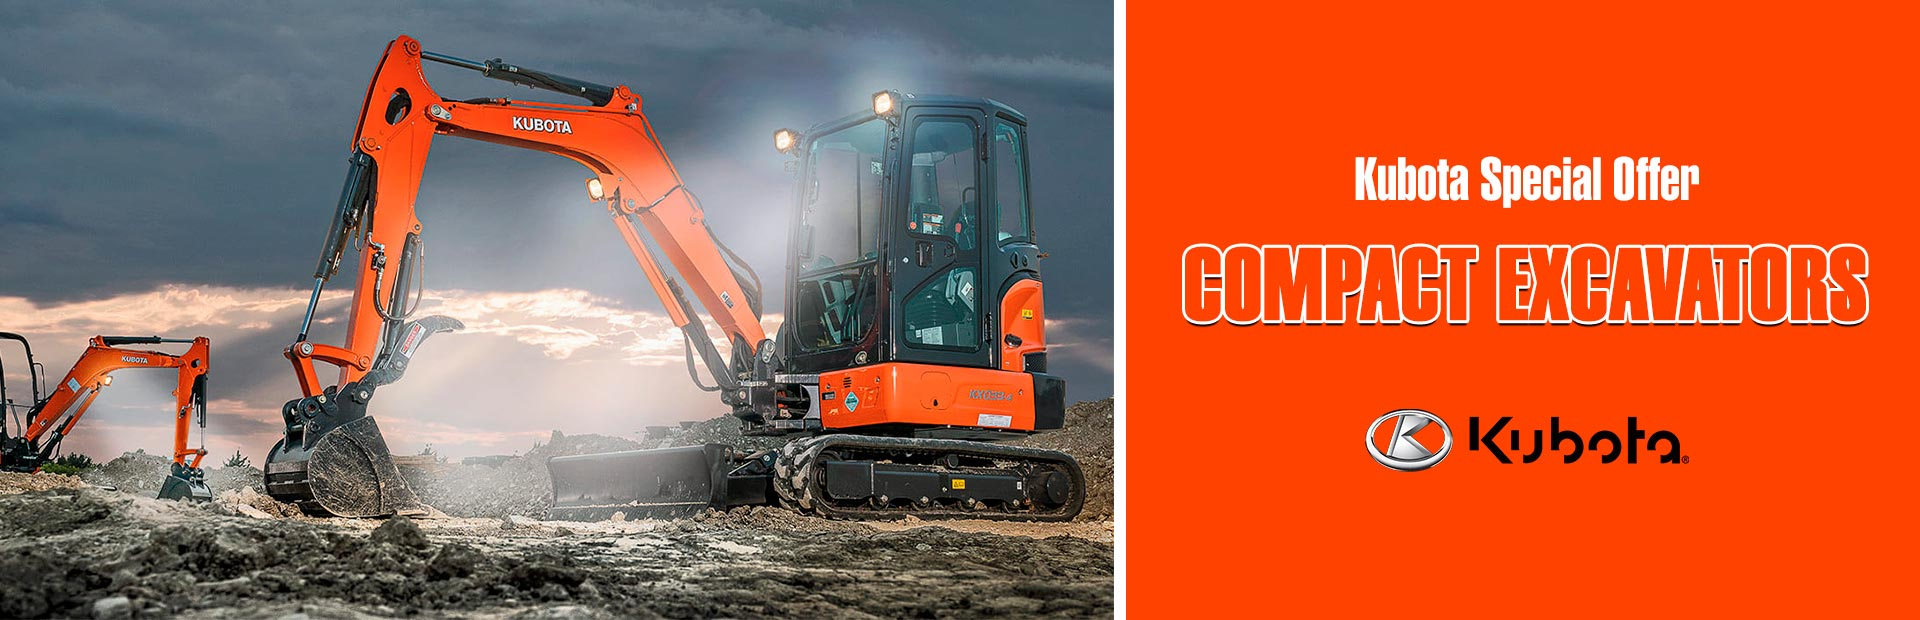 Kubota: Kubota Special Offer - Compact Excavators